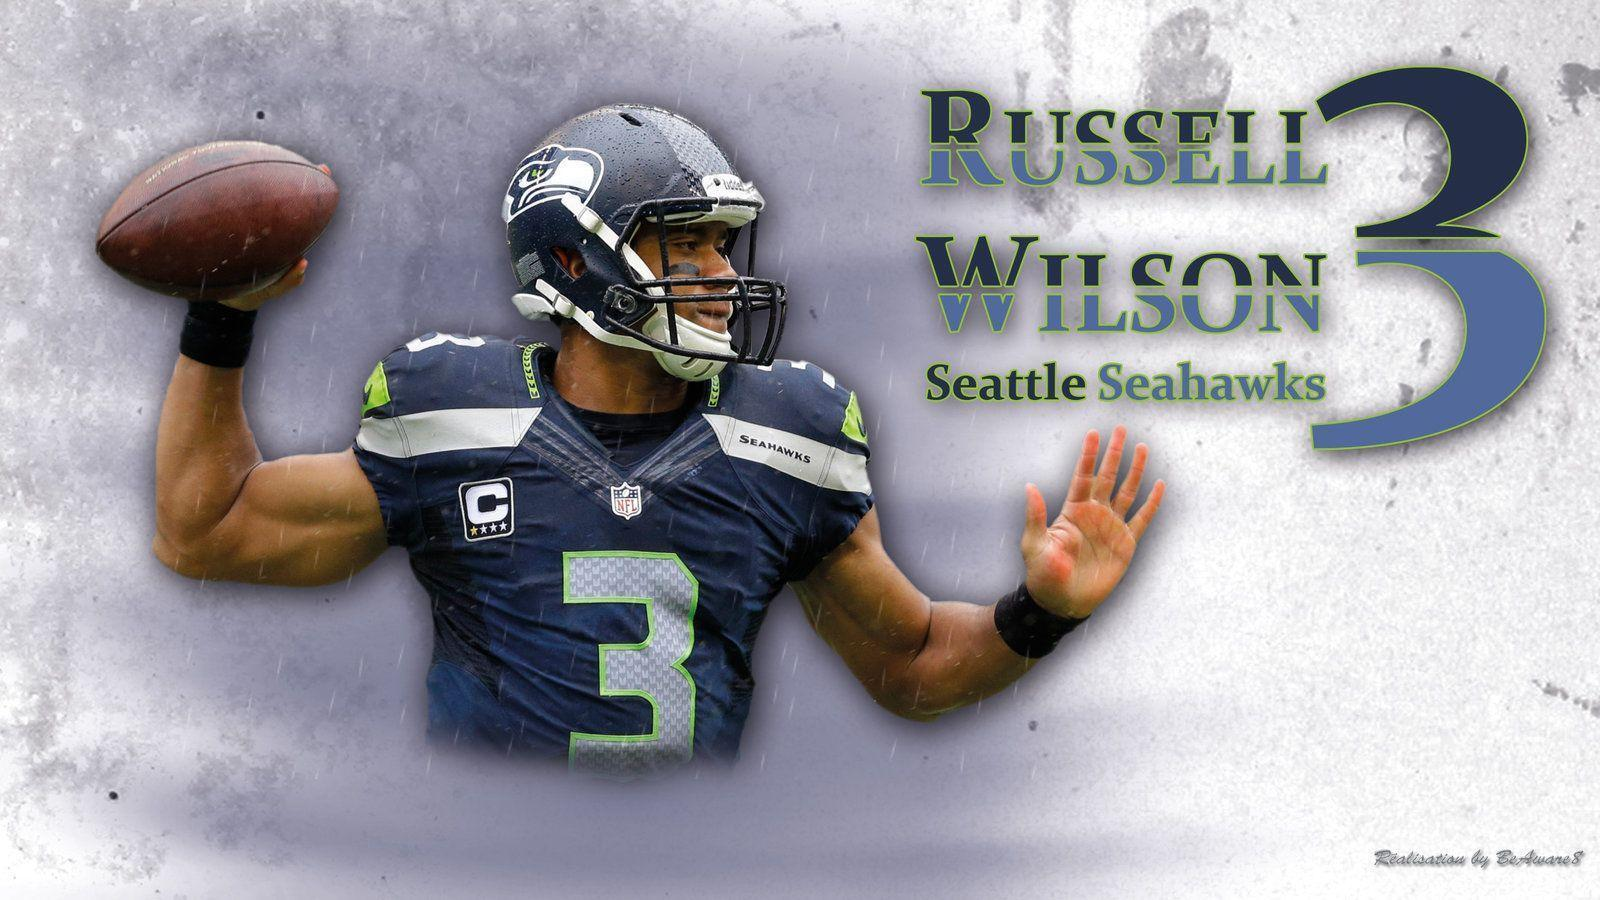 Russell Wilson by BeAware8 on DeviantArt